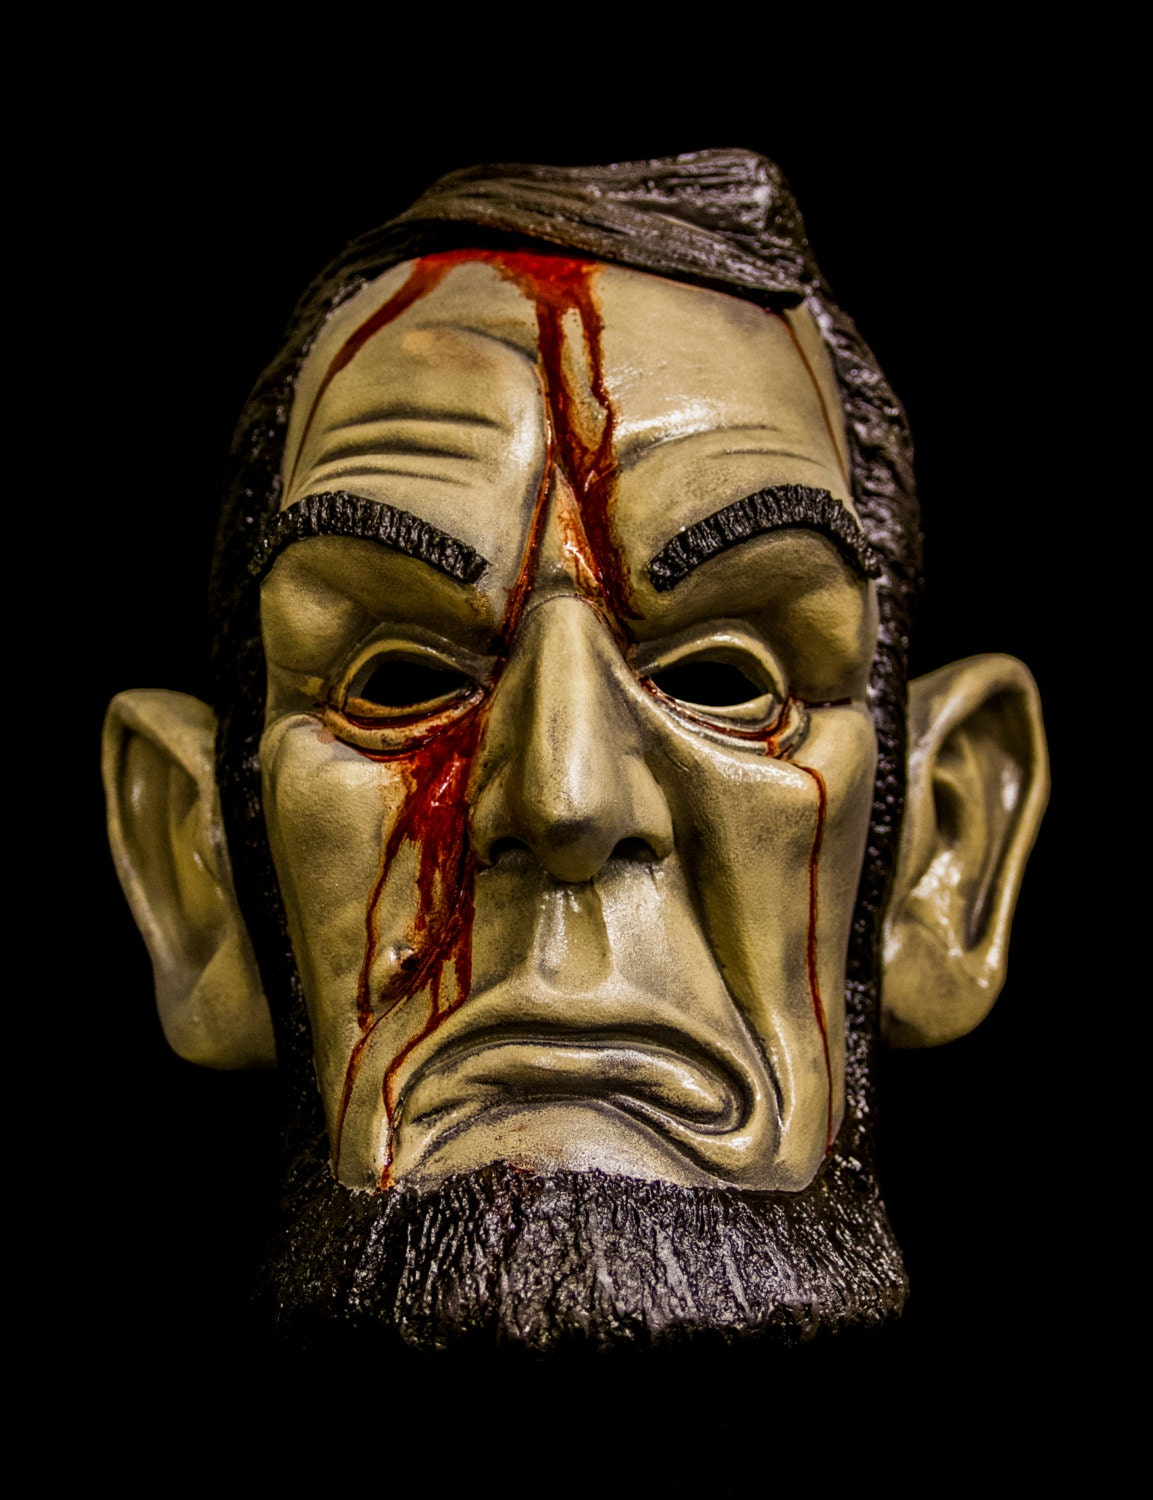 Lincoln Mask With Blood Purge election year inspired.